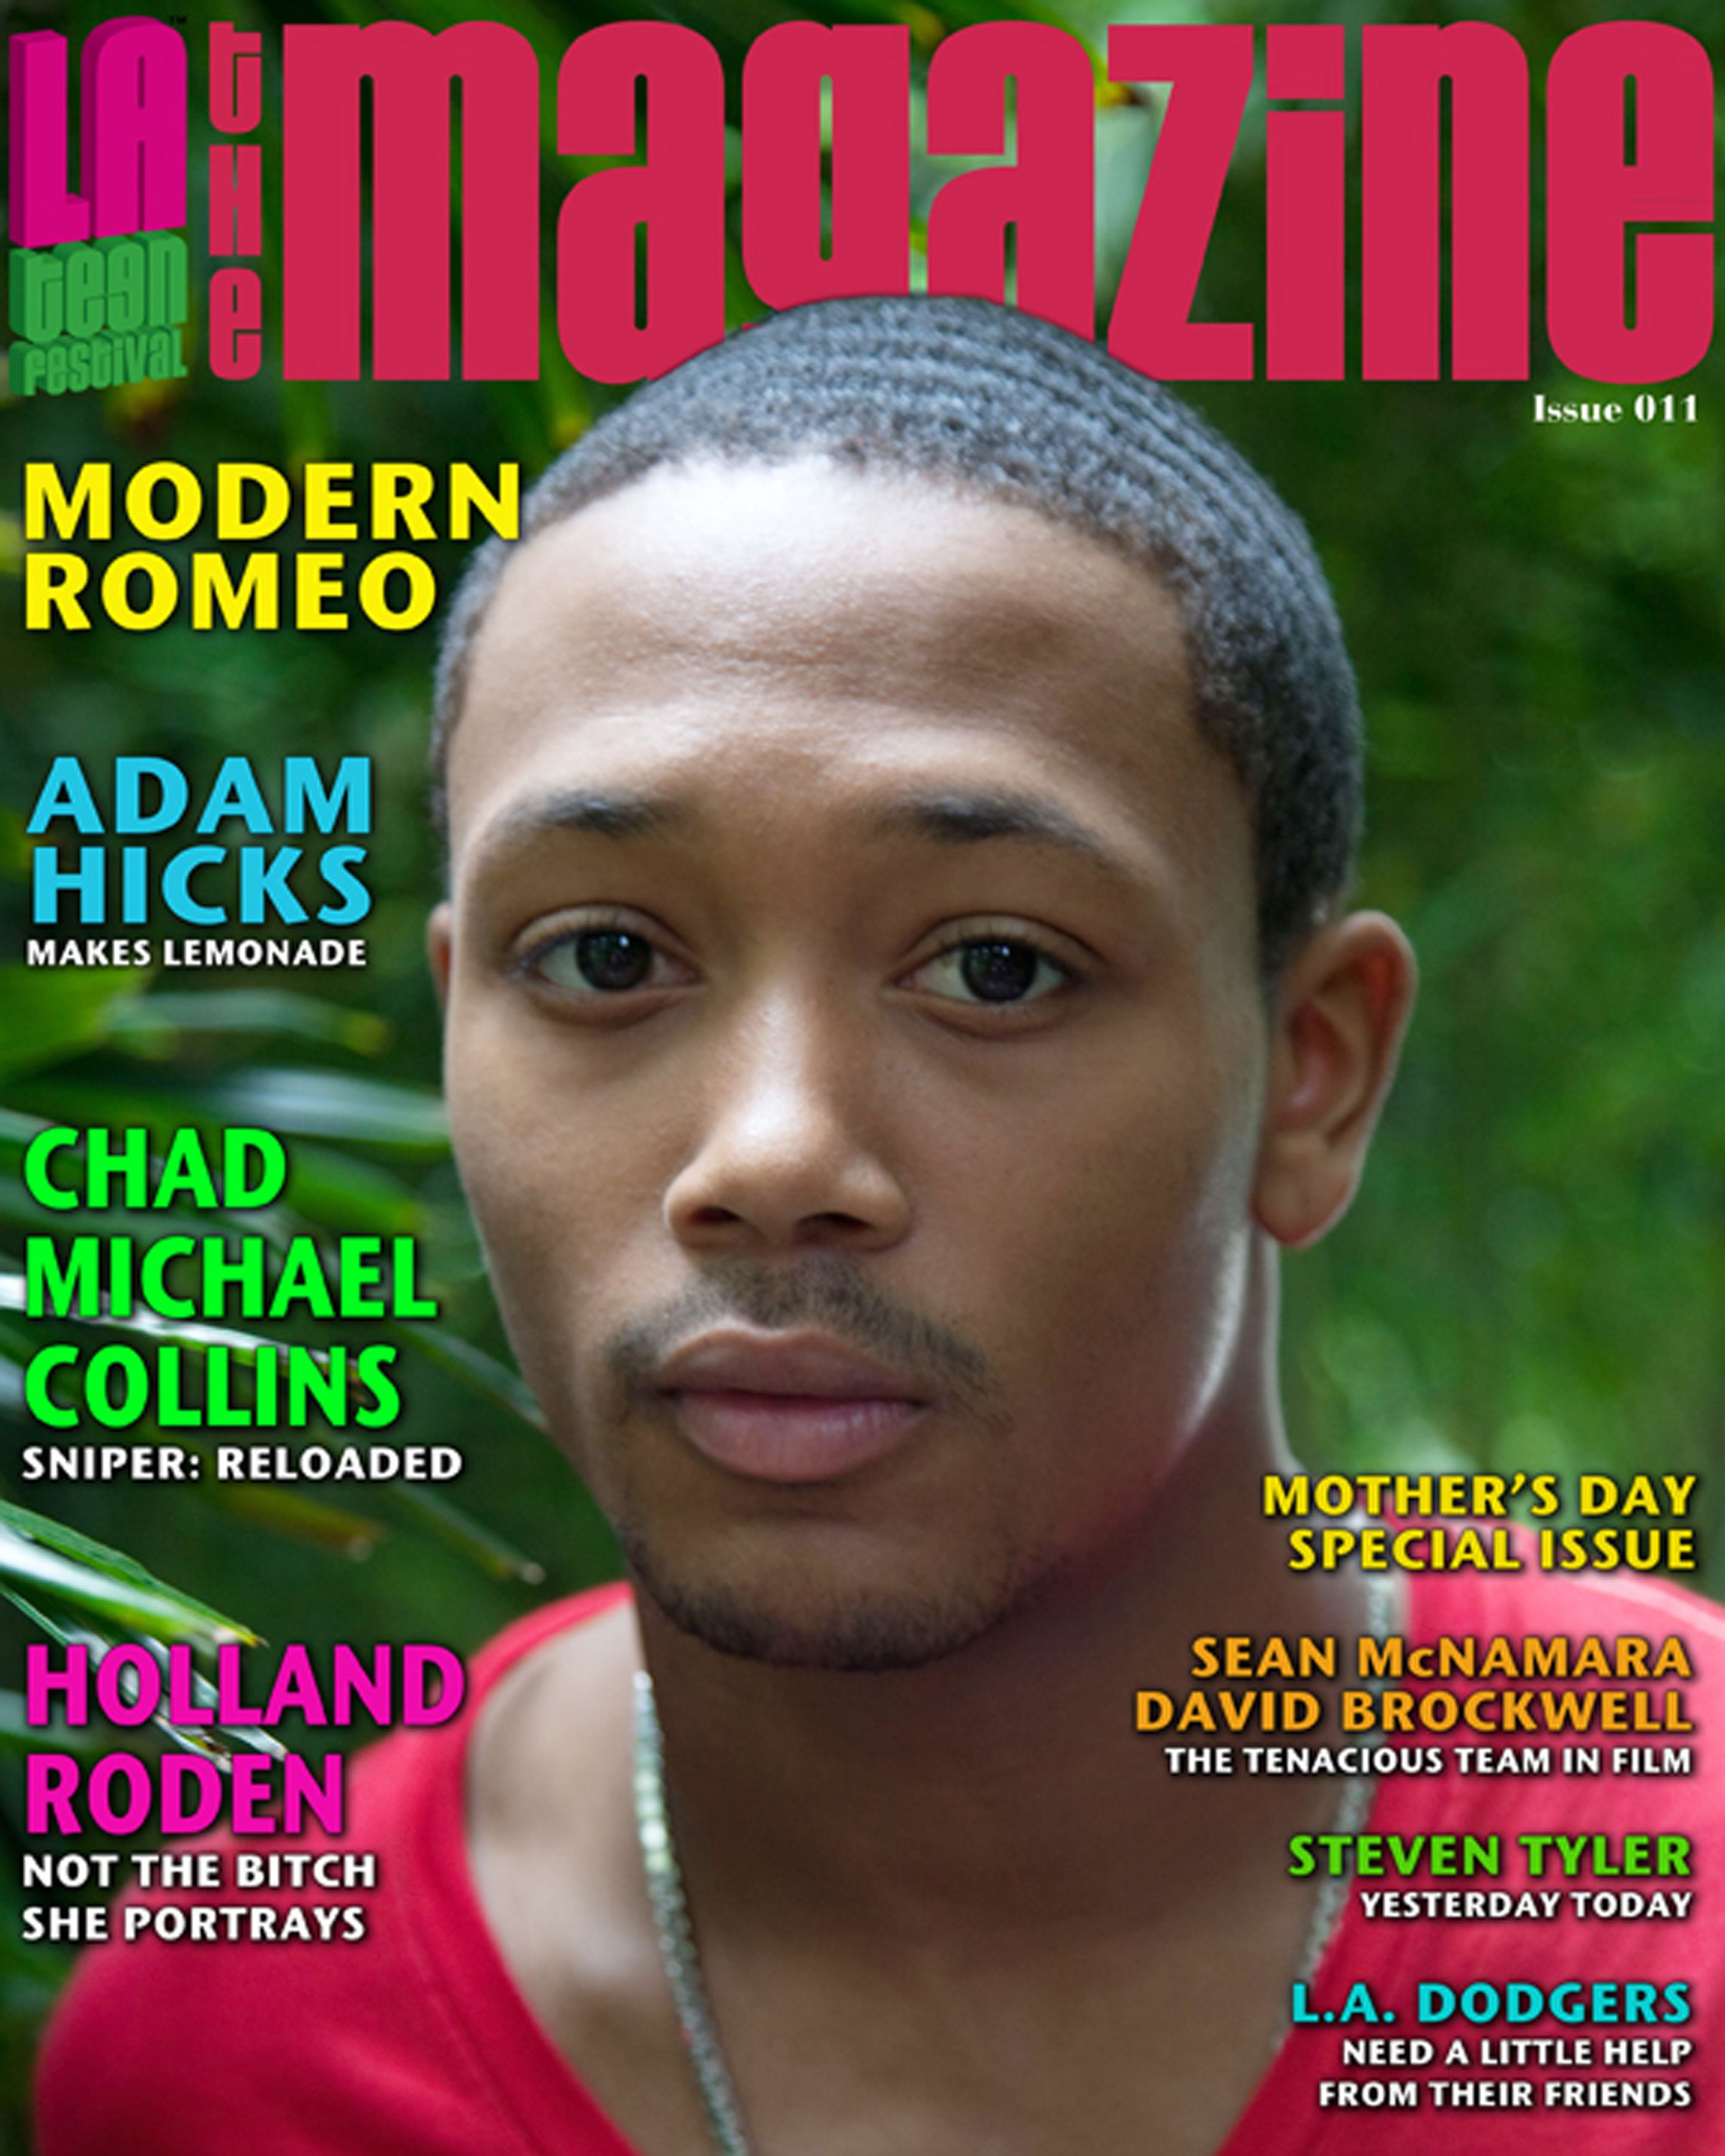 Cover story with romeo miller